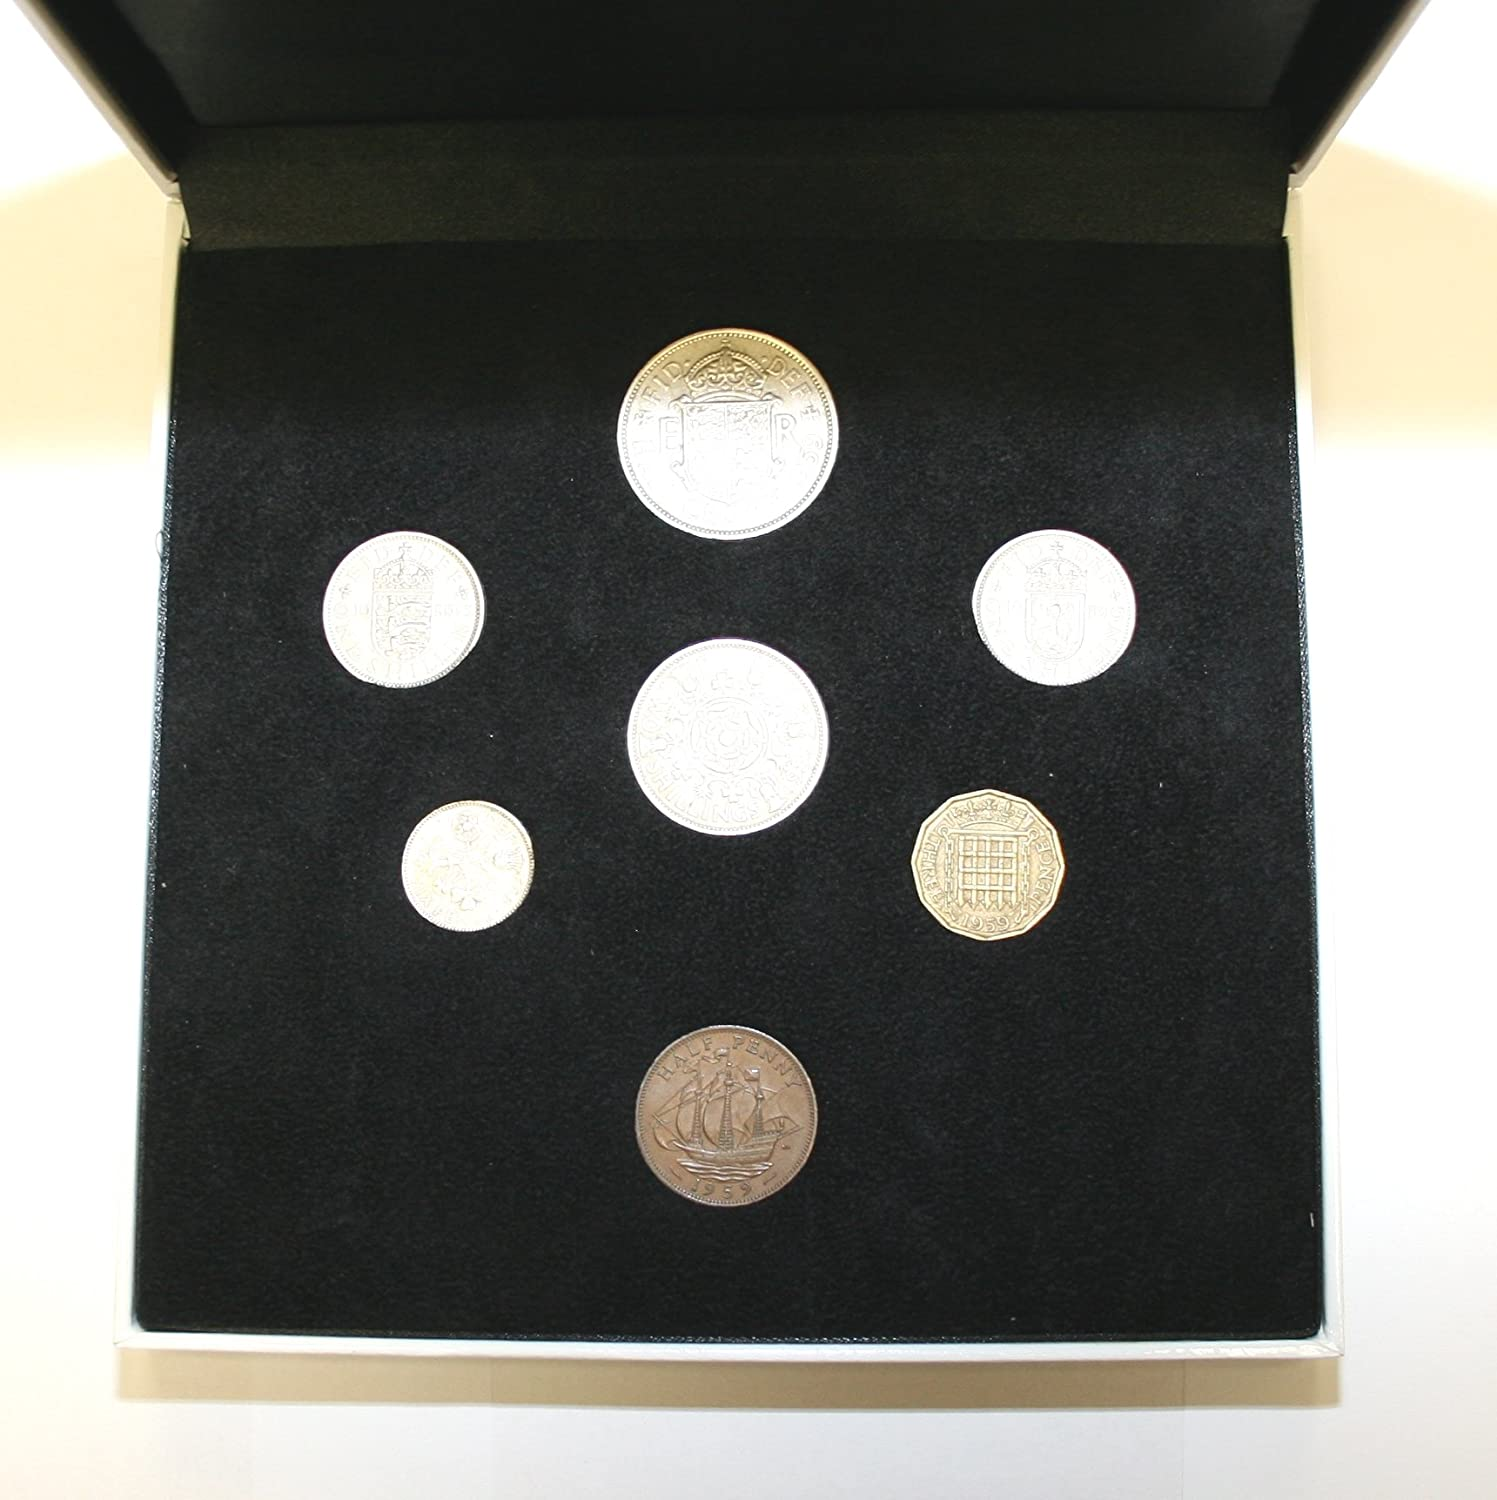 170mm x 170mm x 36mm Contains Every Coin Issued In 1959 All Professionally Graded Very Fine or Better Condition 1959 Complete British Coin Year Set in a Specially Designed Quality Presentation Case